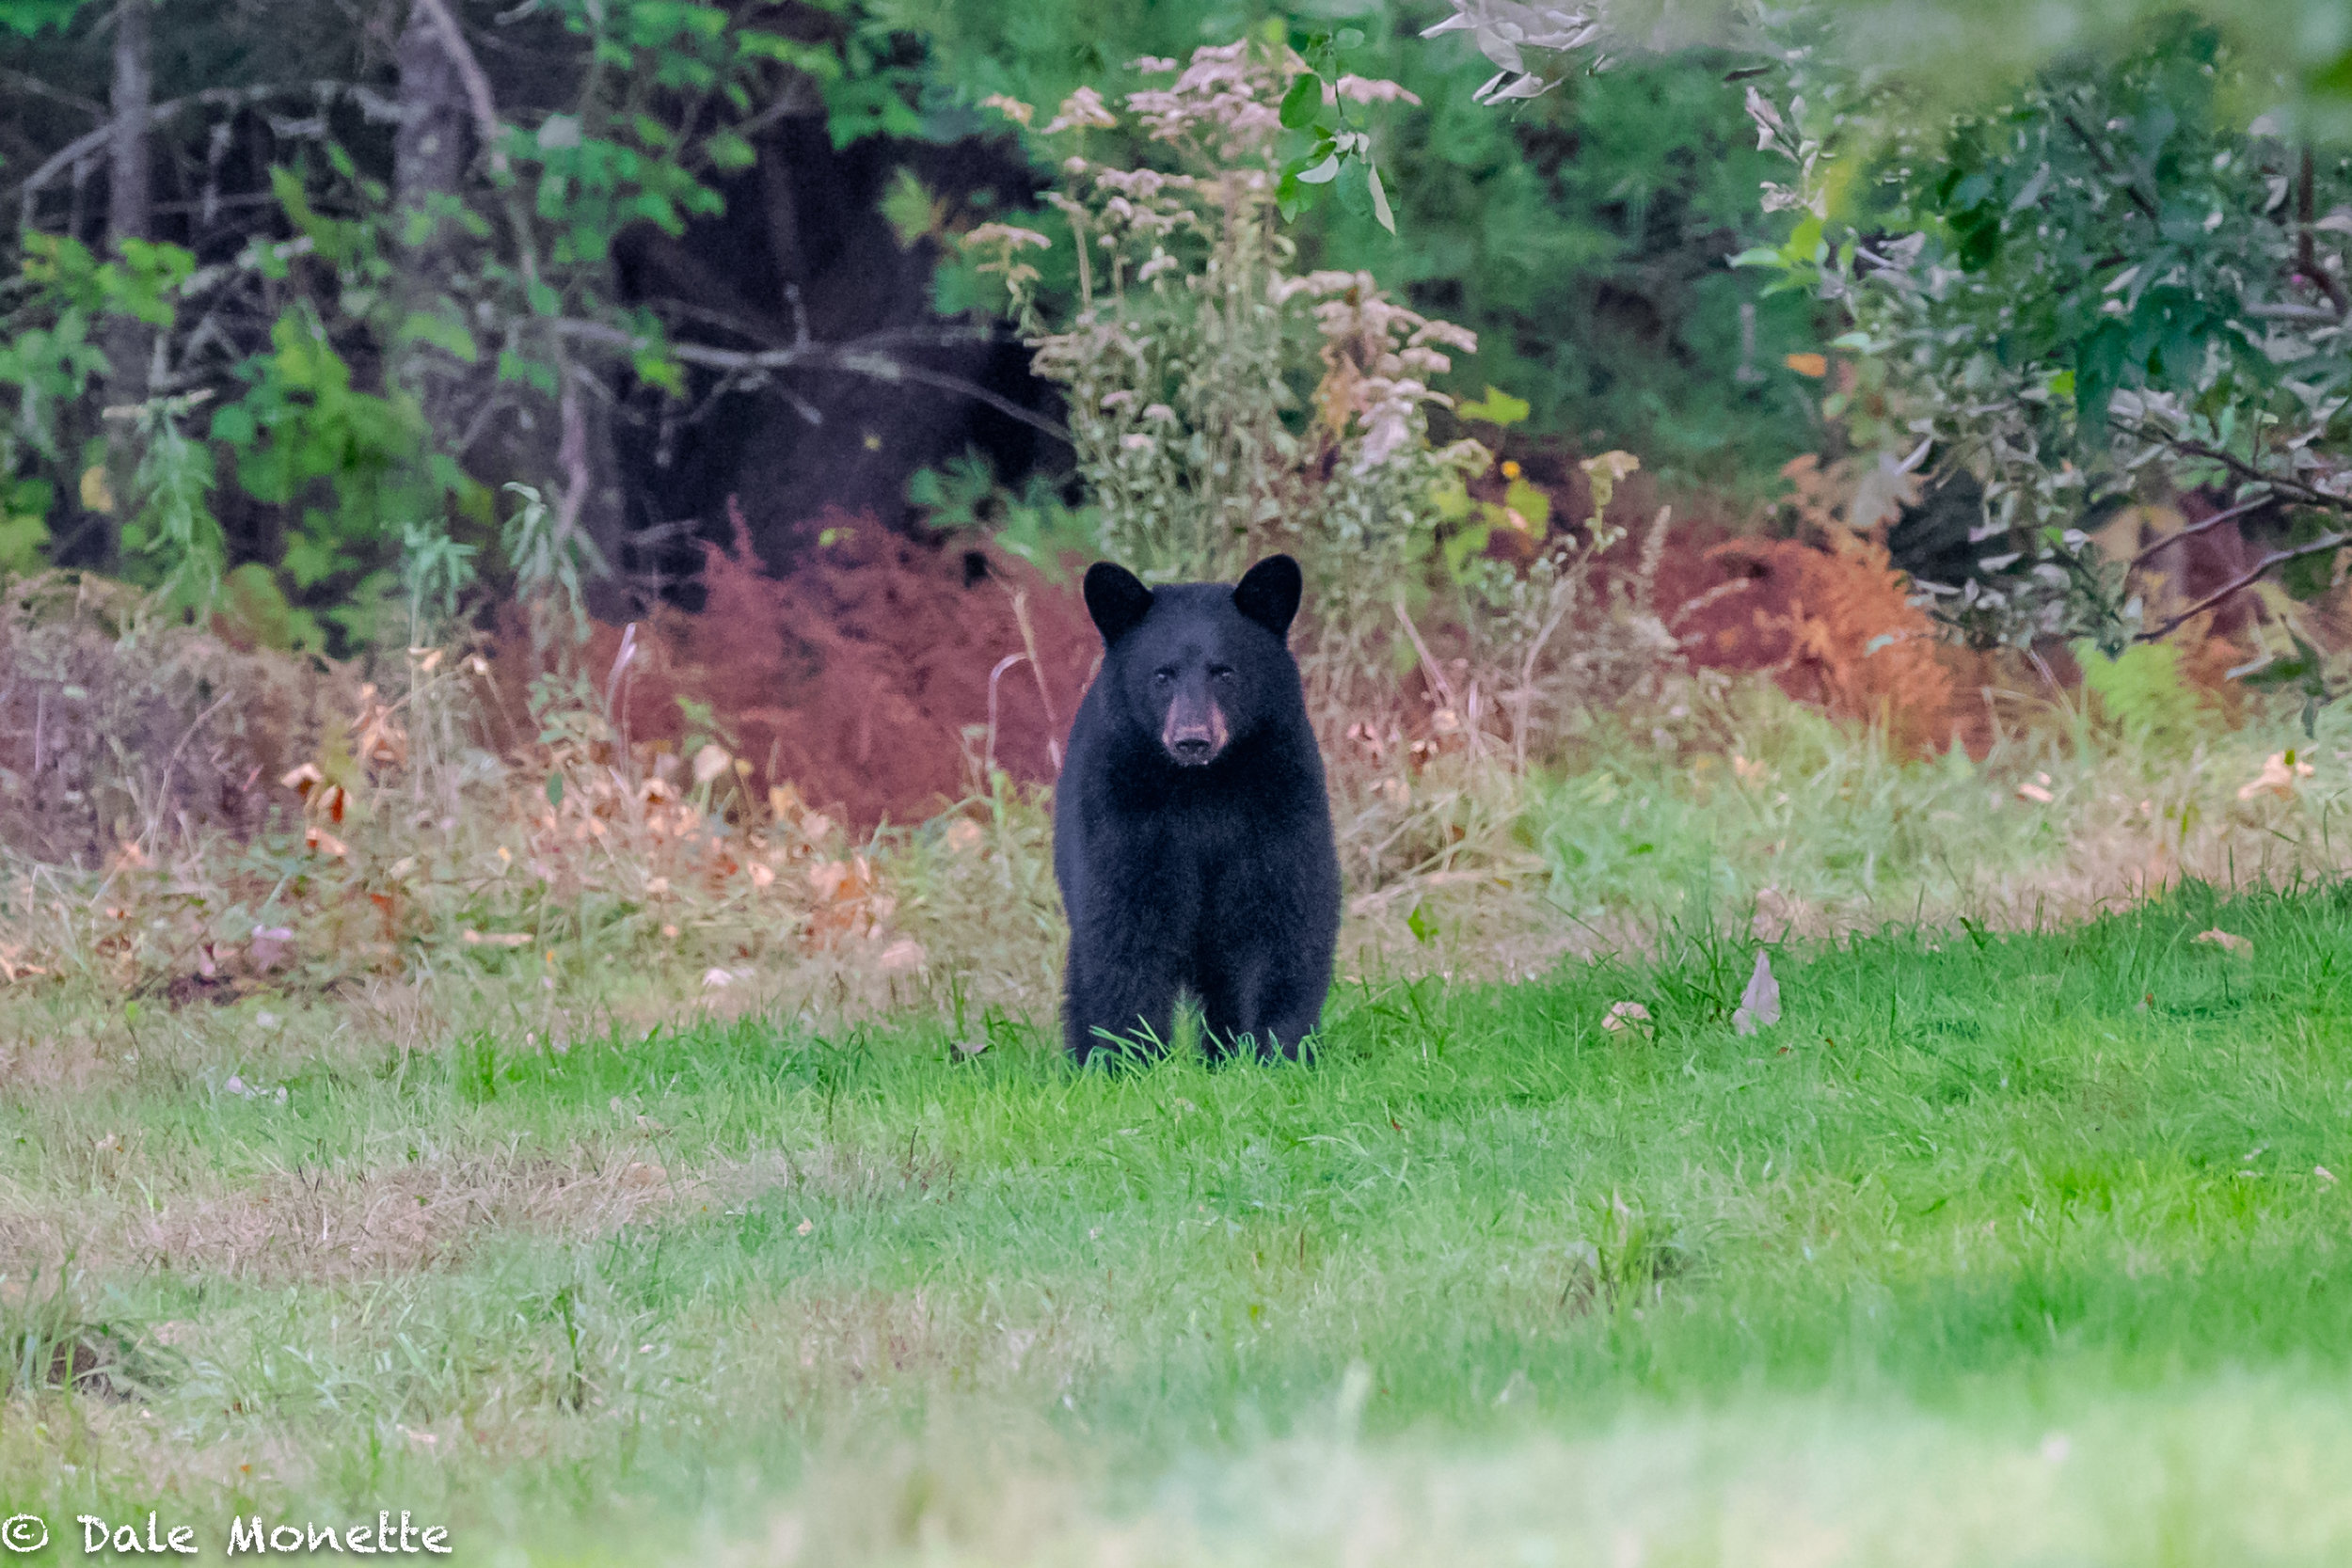 This small bear was after apples. I was about 175 yards away from him when he appeared. He spotted me behind the wall and in the woods but the power of the apples overpowered him and he must have figured I wasn't a threat and carried out his plan.